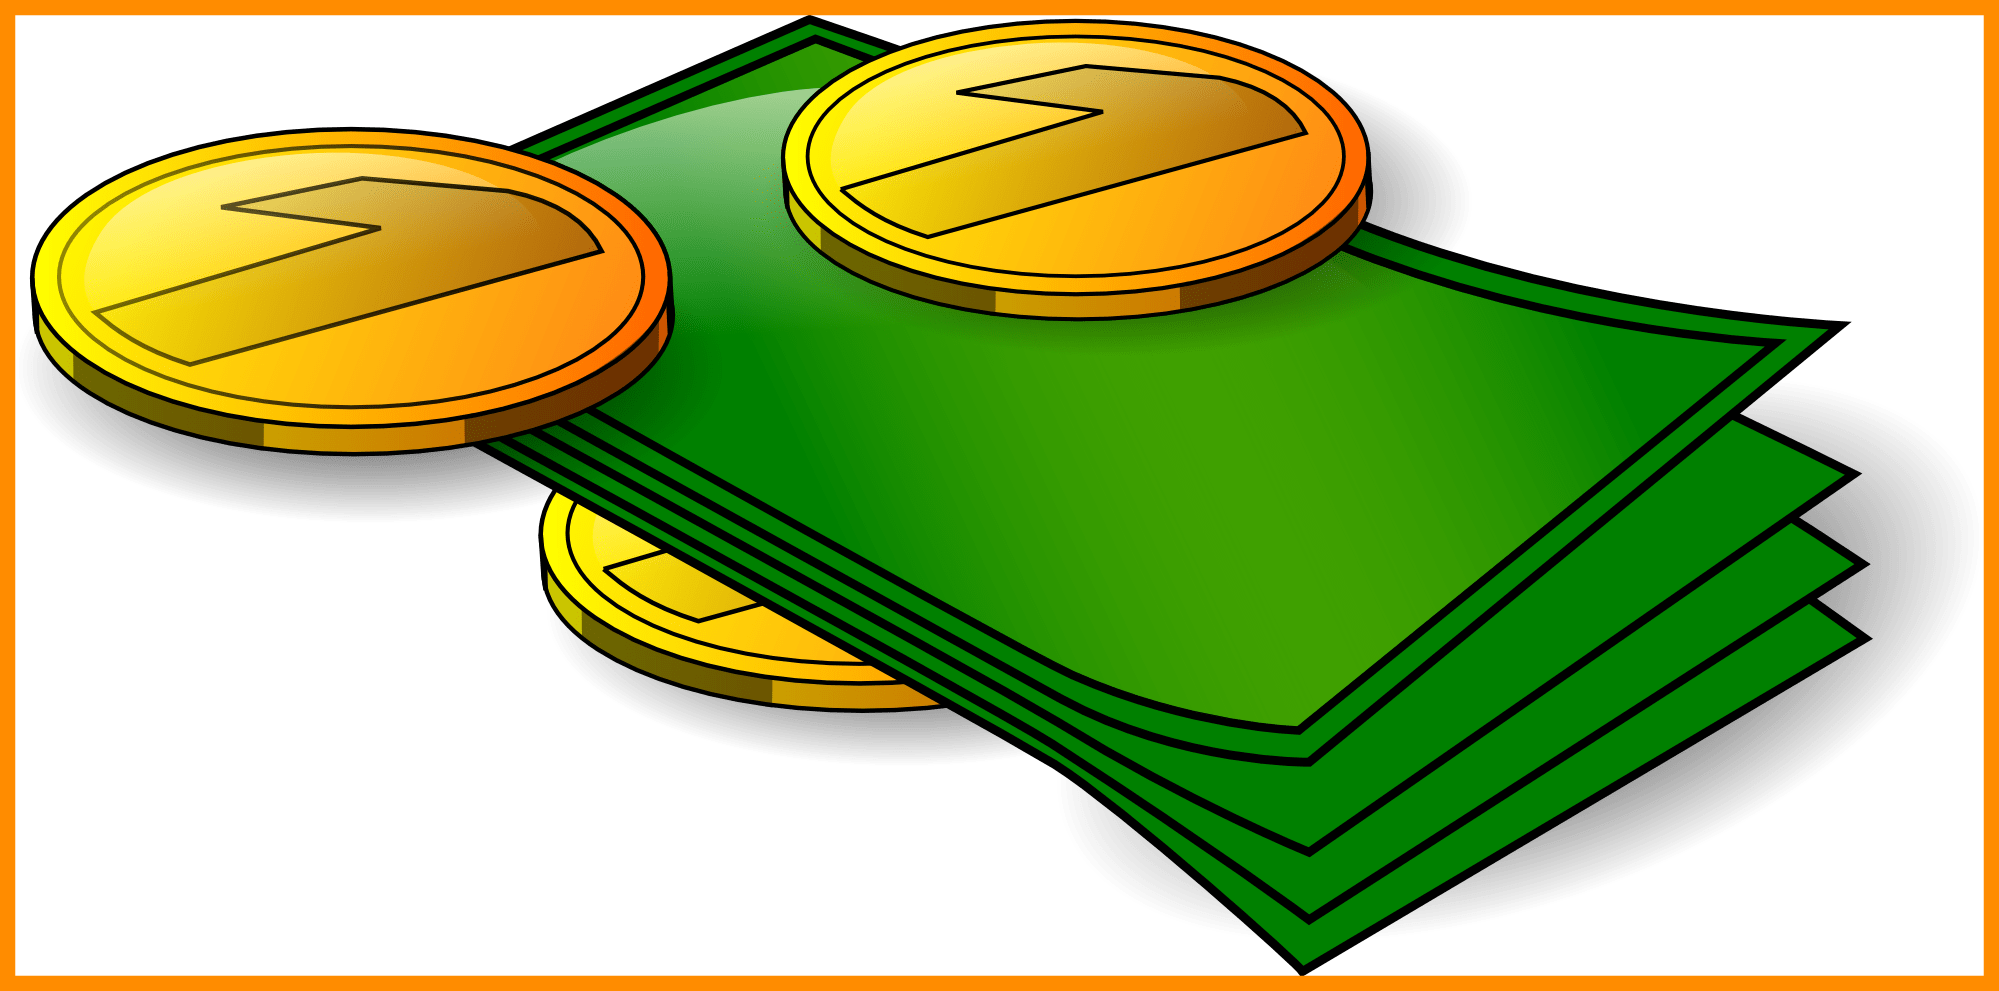 Money clipart animated gif. Marvelous collection pics of